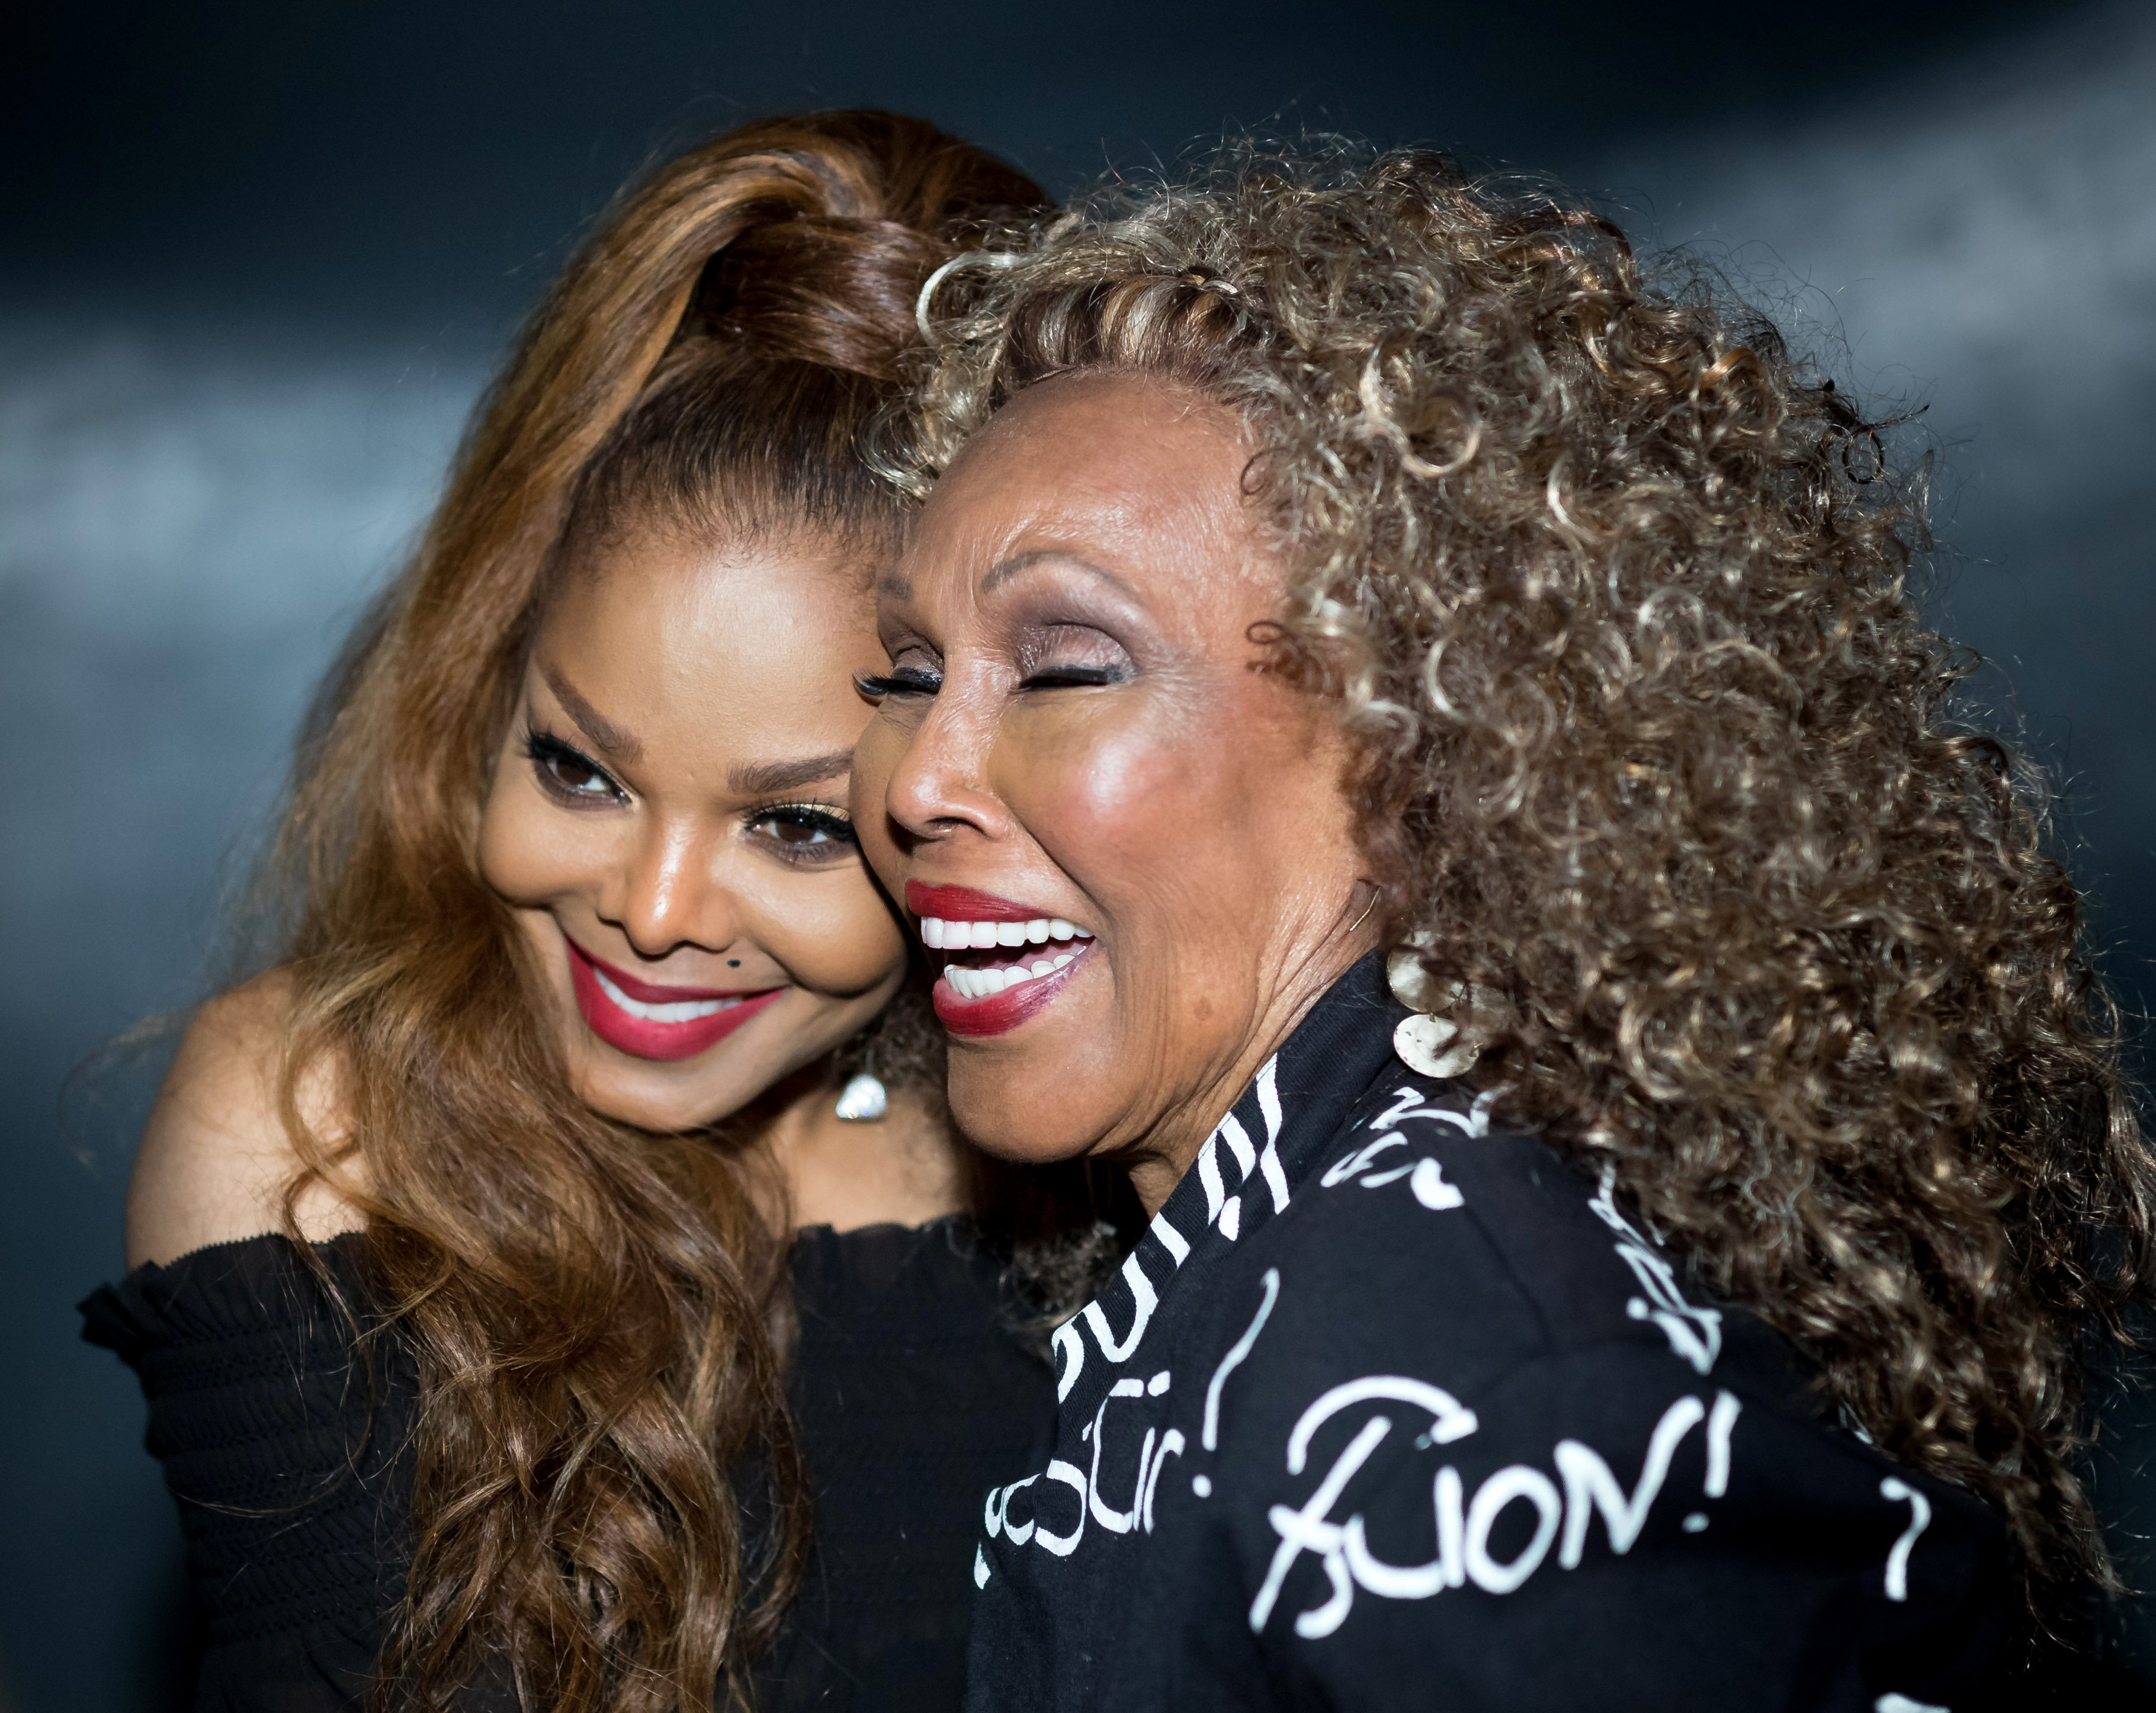 Image Credits: Getty Images / Greg Doherty | Singer-songwriter Janet Jackson meets Singer-songwriter and Actress Ja'net Dubois at the Janet Jackson's State Of The World Tour After Party at Lure on October 8, 2017 in Los Angeles, California.